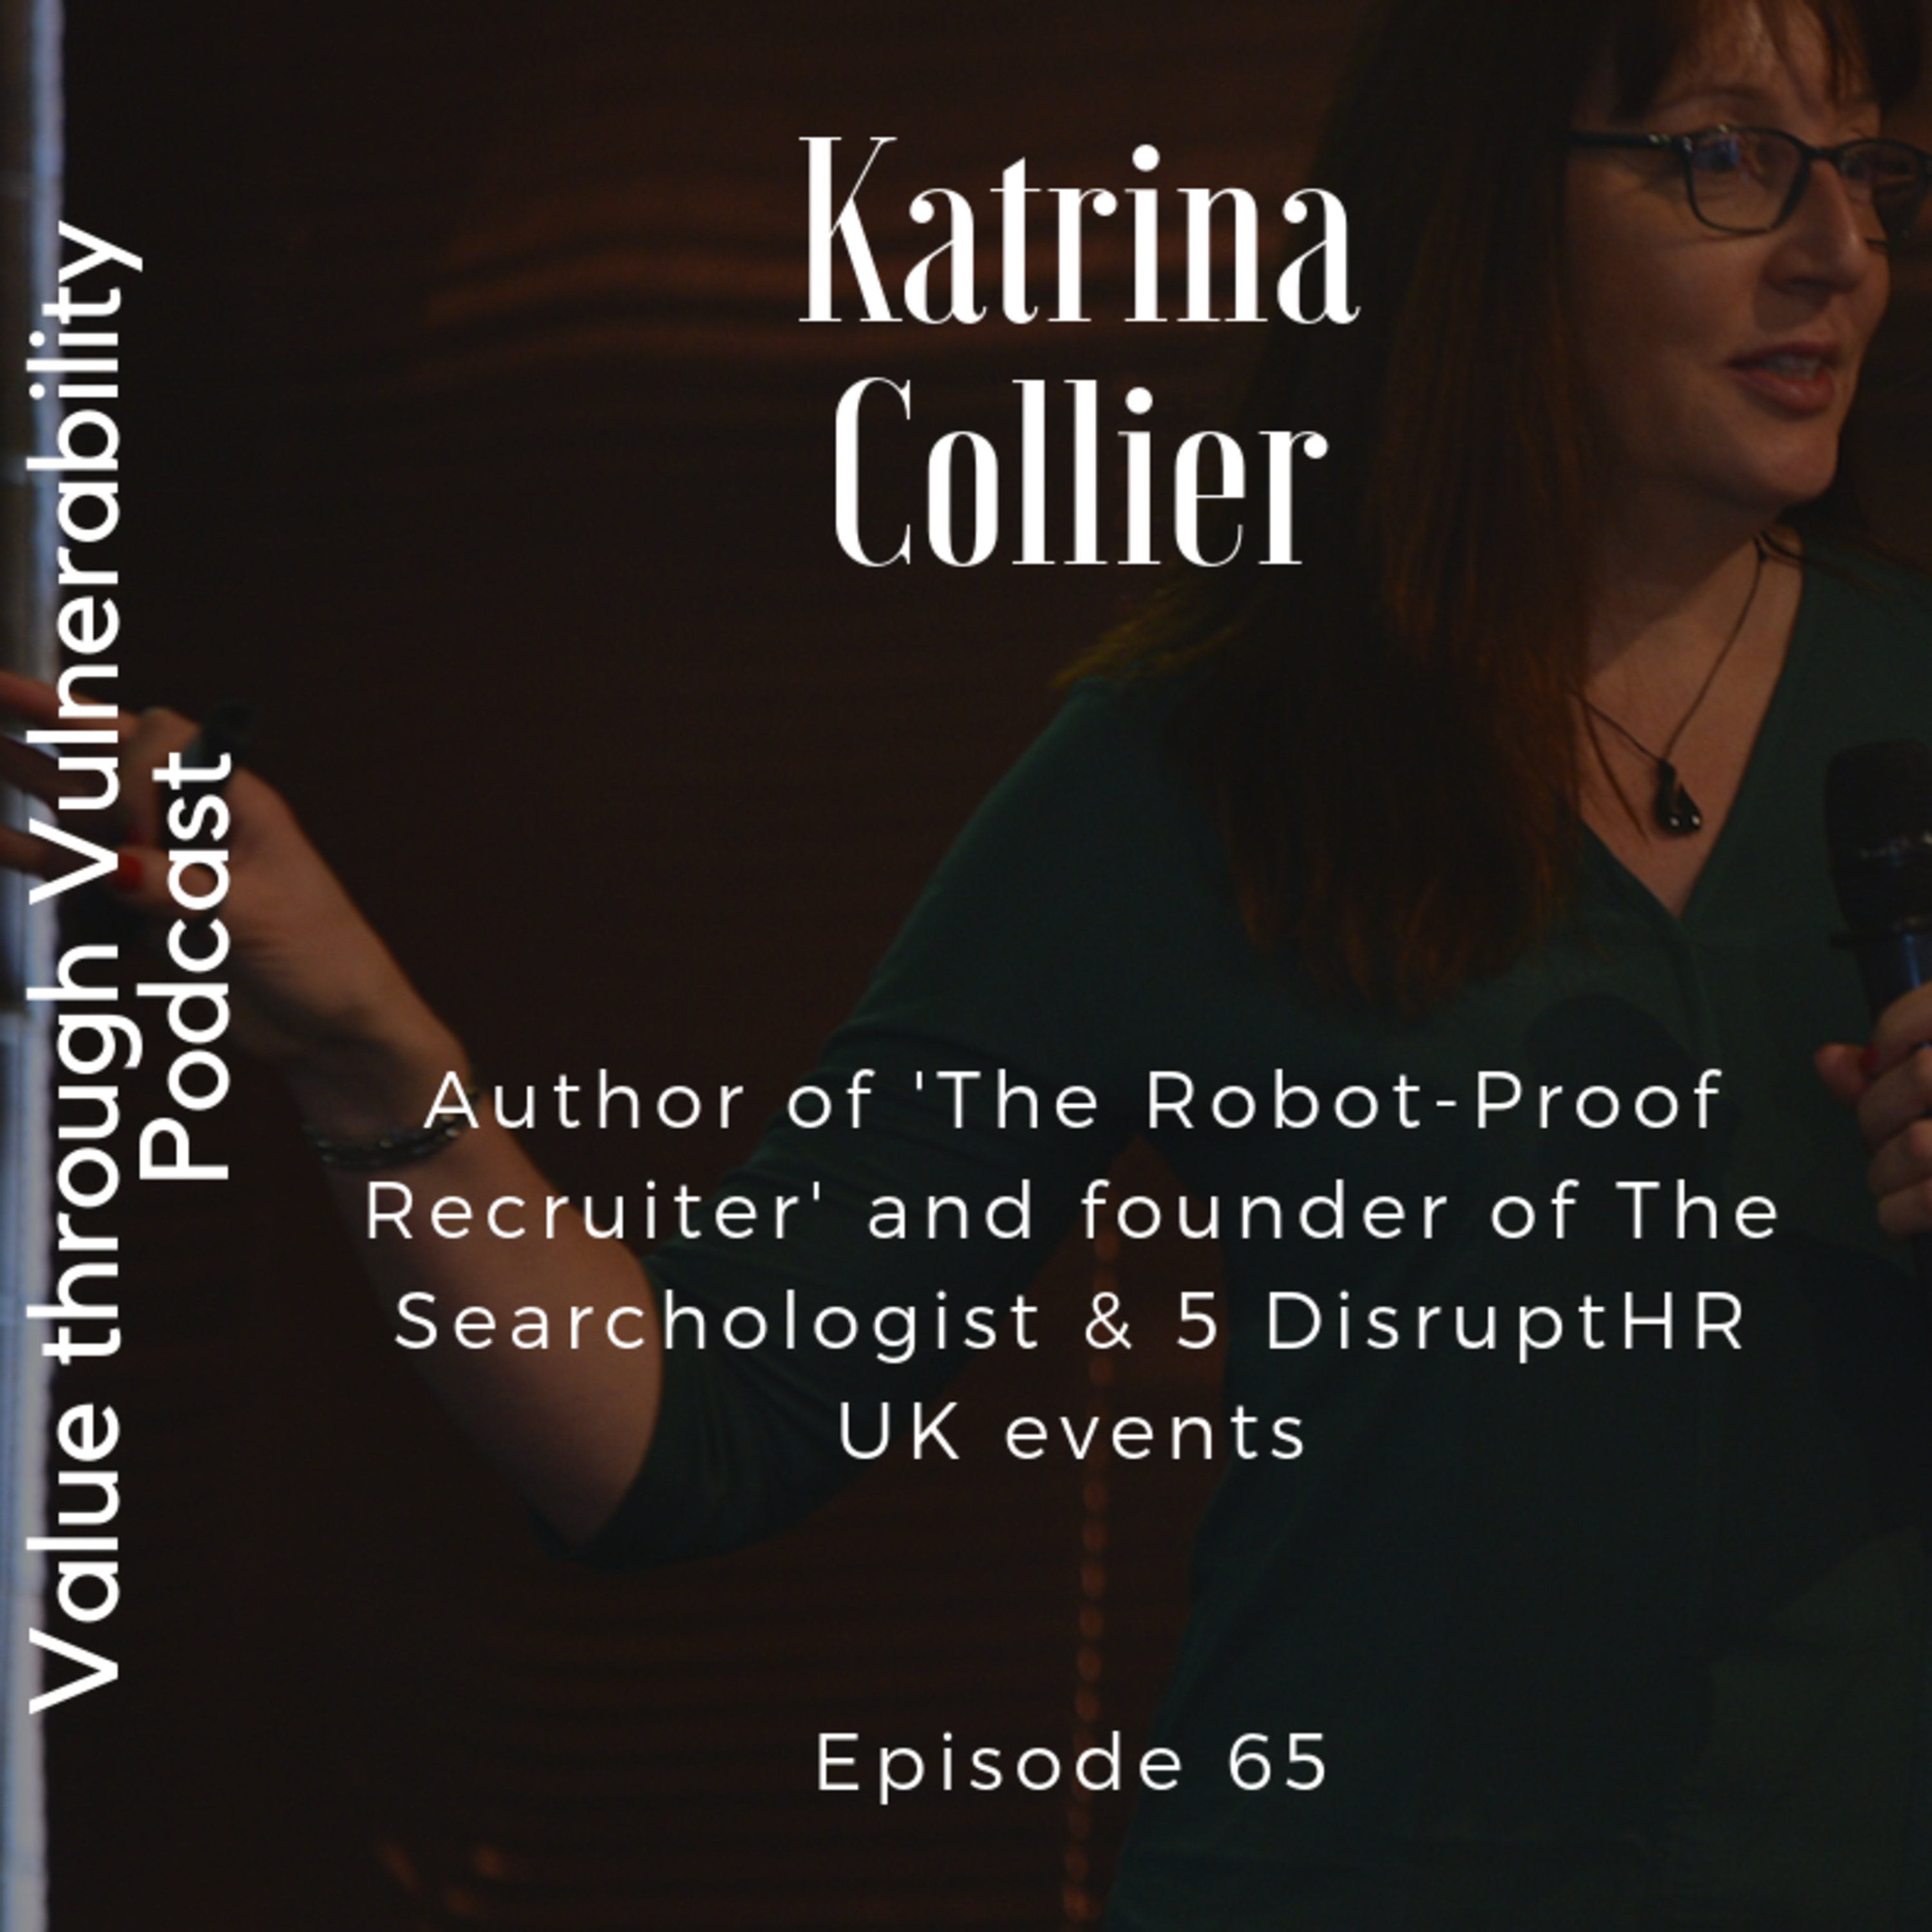 Episode 65 - Katrina Collier, Author of 'The Robot-Proof Recruiter' and founder of The Searchologist & 5 DisruptHR UK events